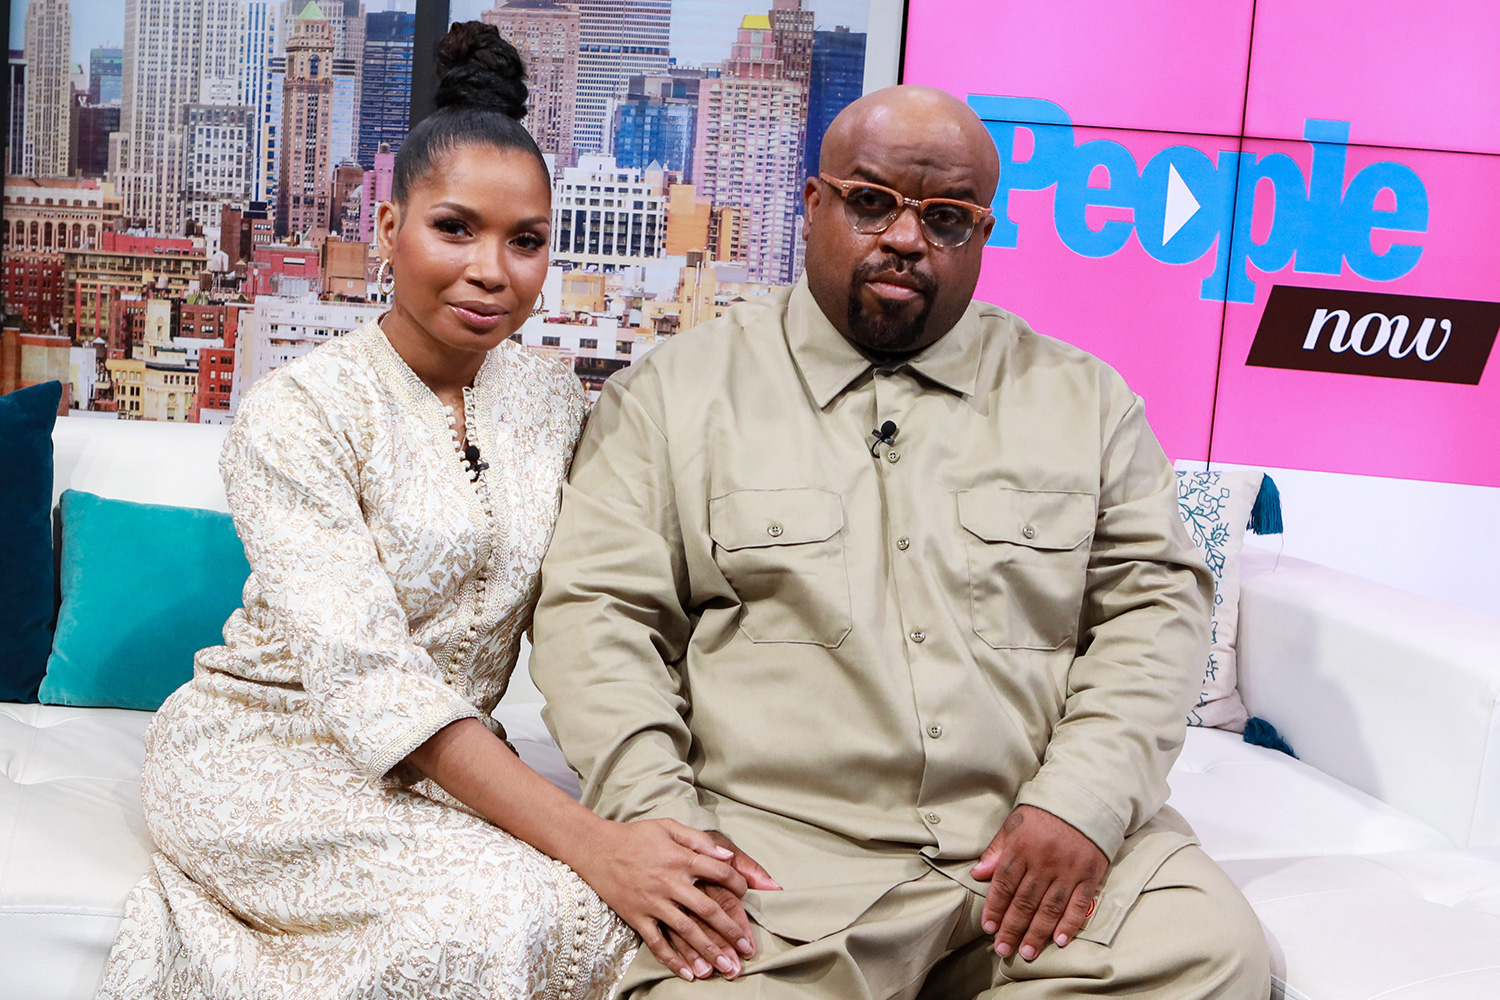 Shani James and CeeLo Green visit People Now on February 12, 2020 in New York